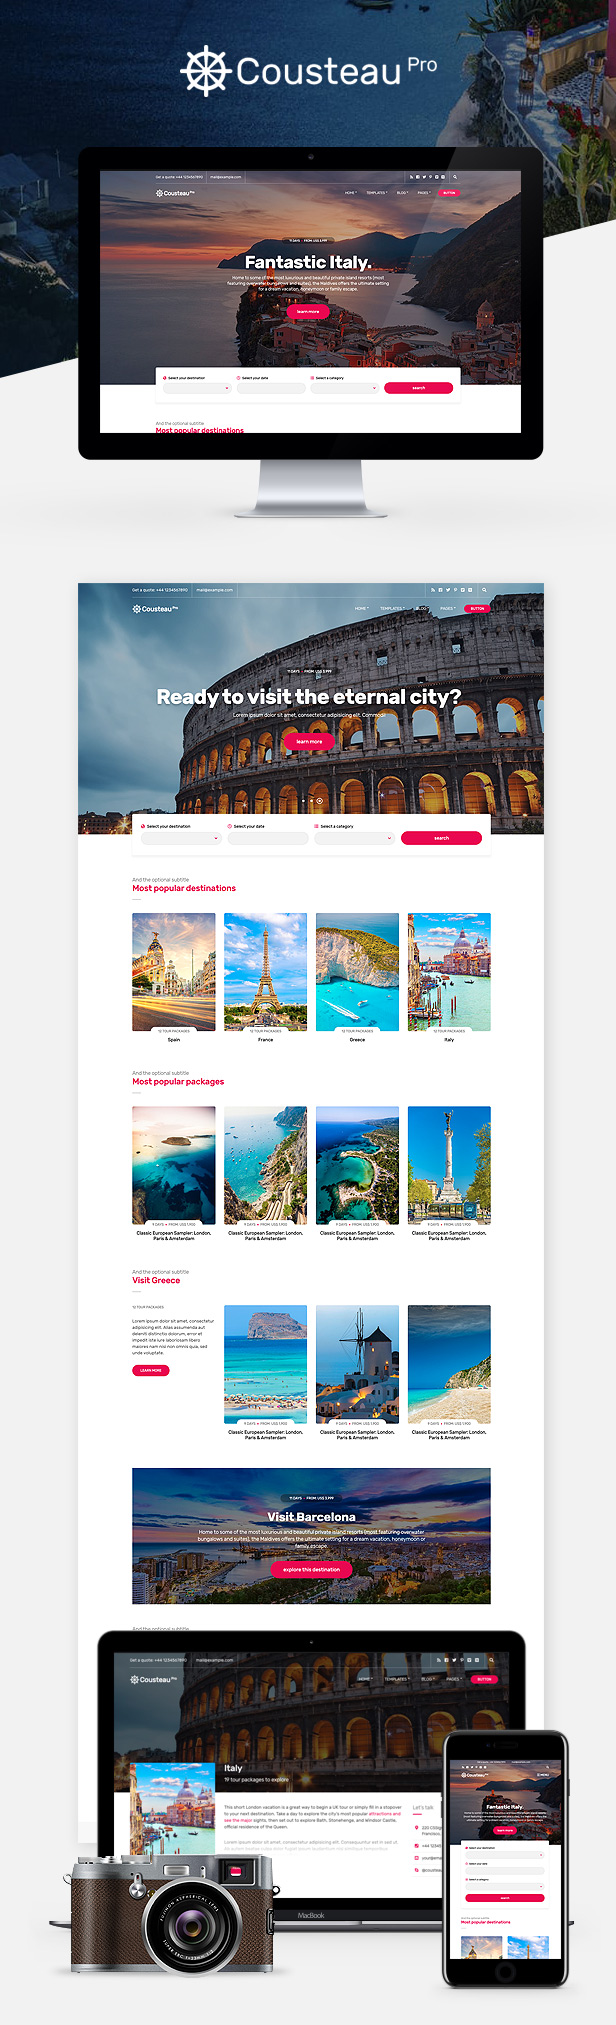 Cousteau Pro - The Travel Site Template - 1